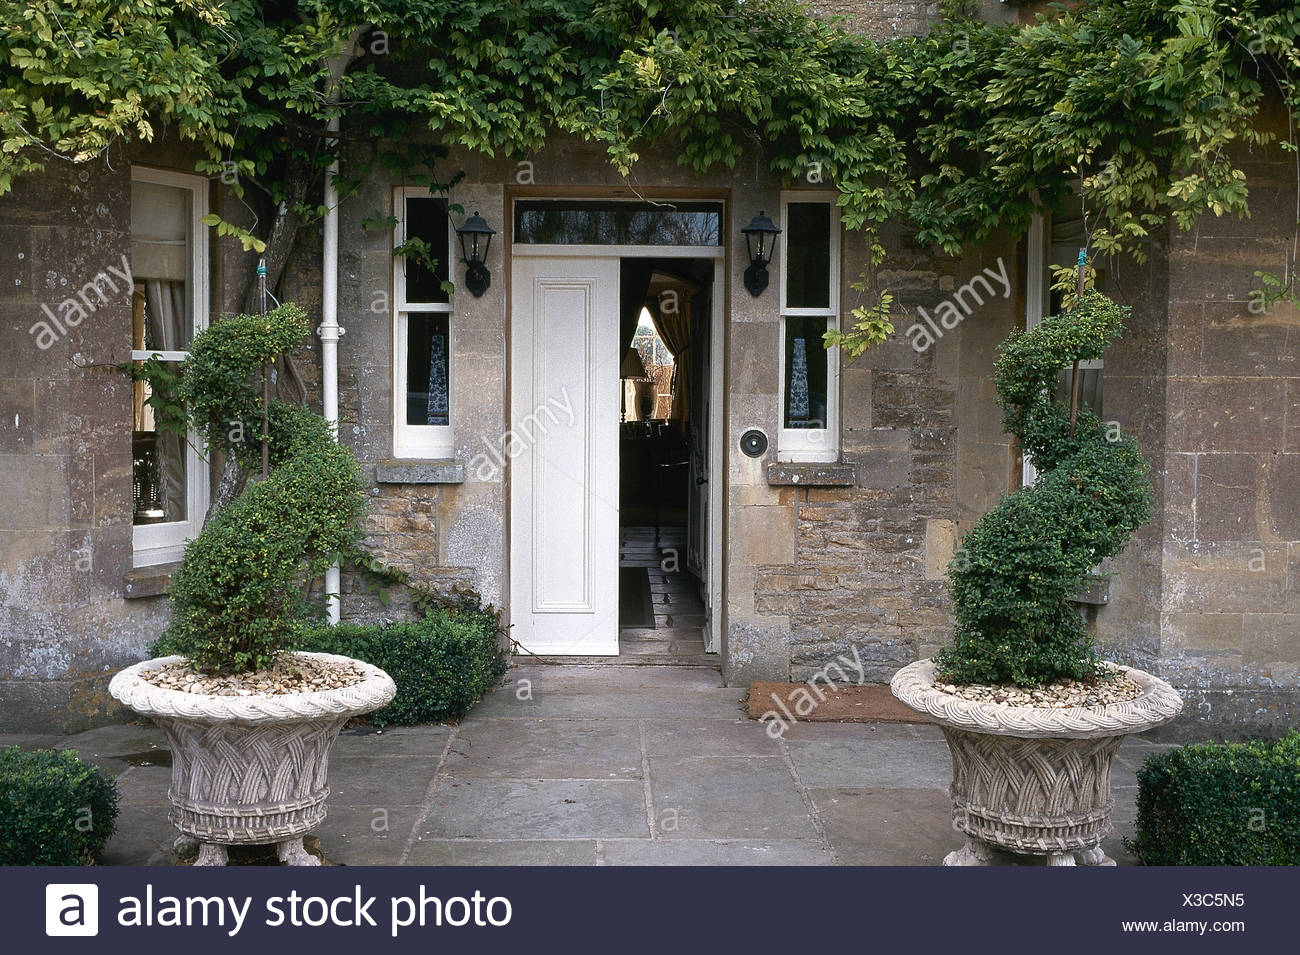 Spiral Topiary Box In Stone Urns In Front Of House With Open Front Door Stock Photo Alamy